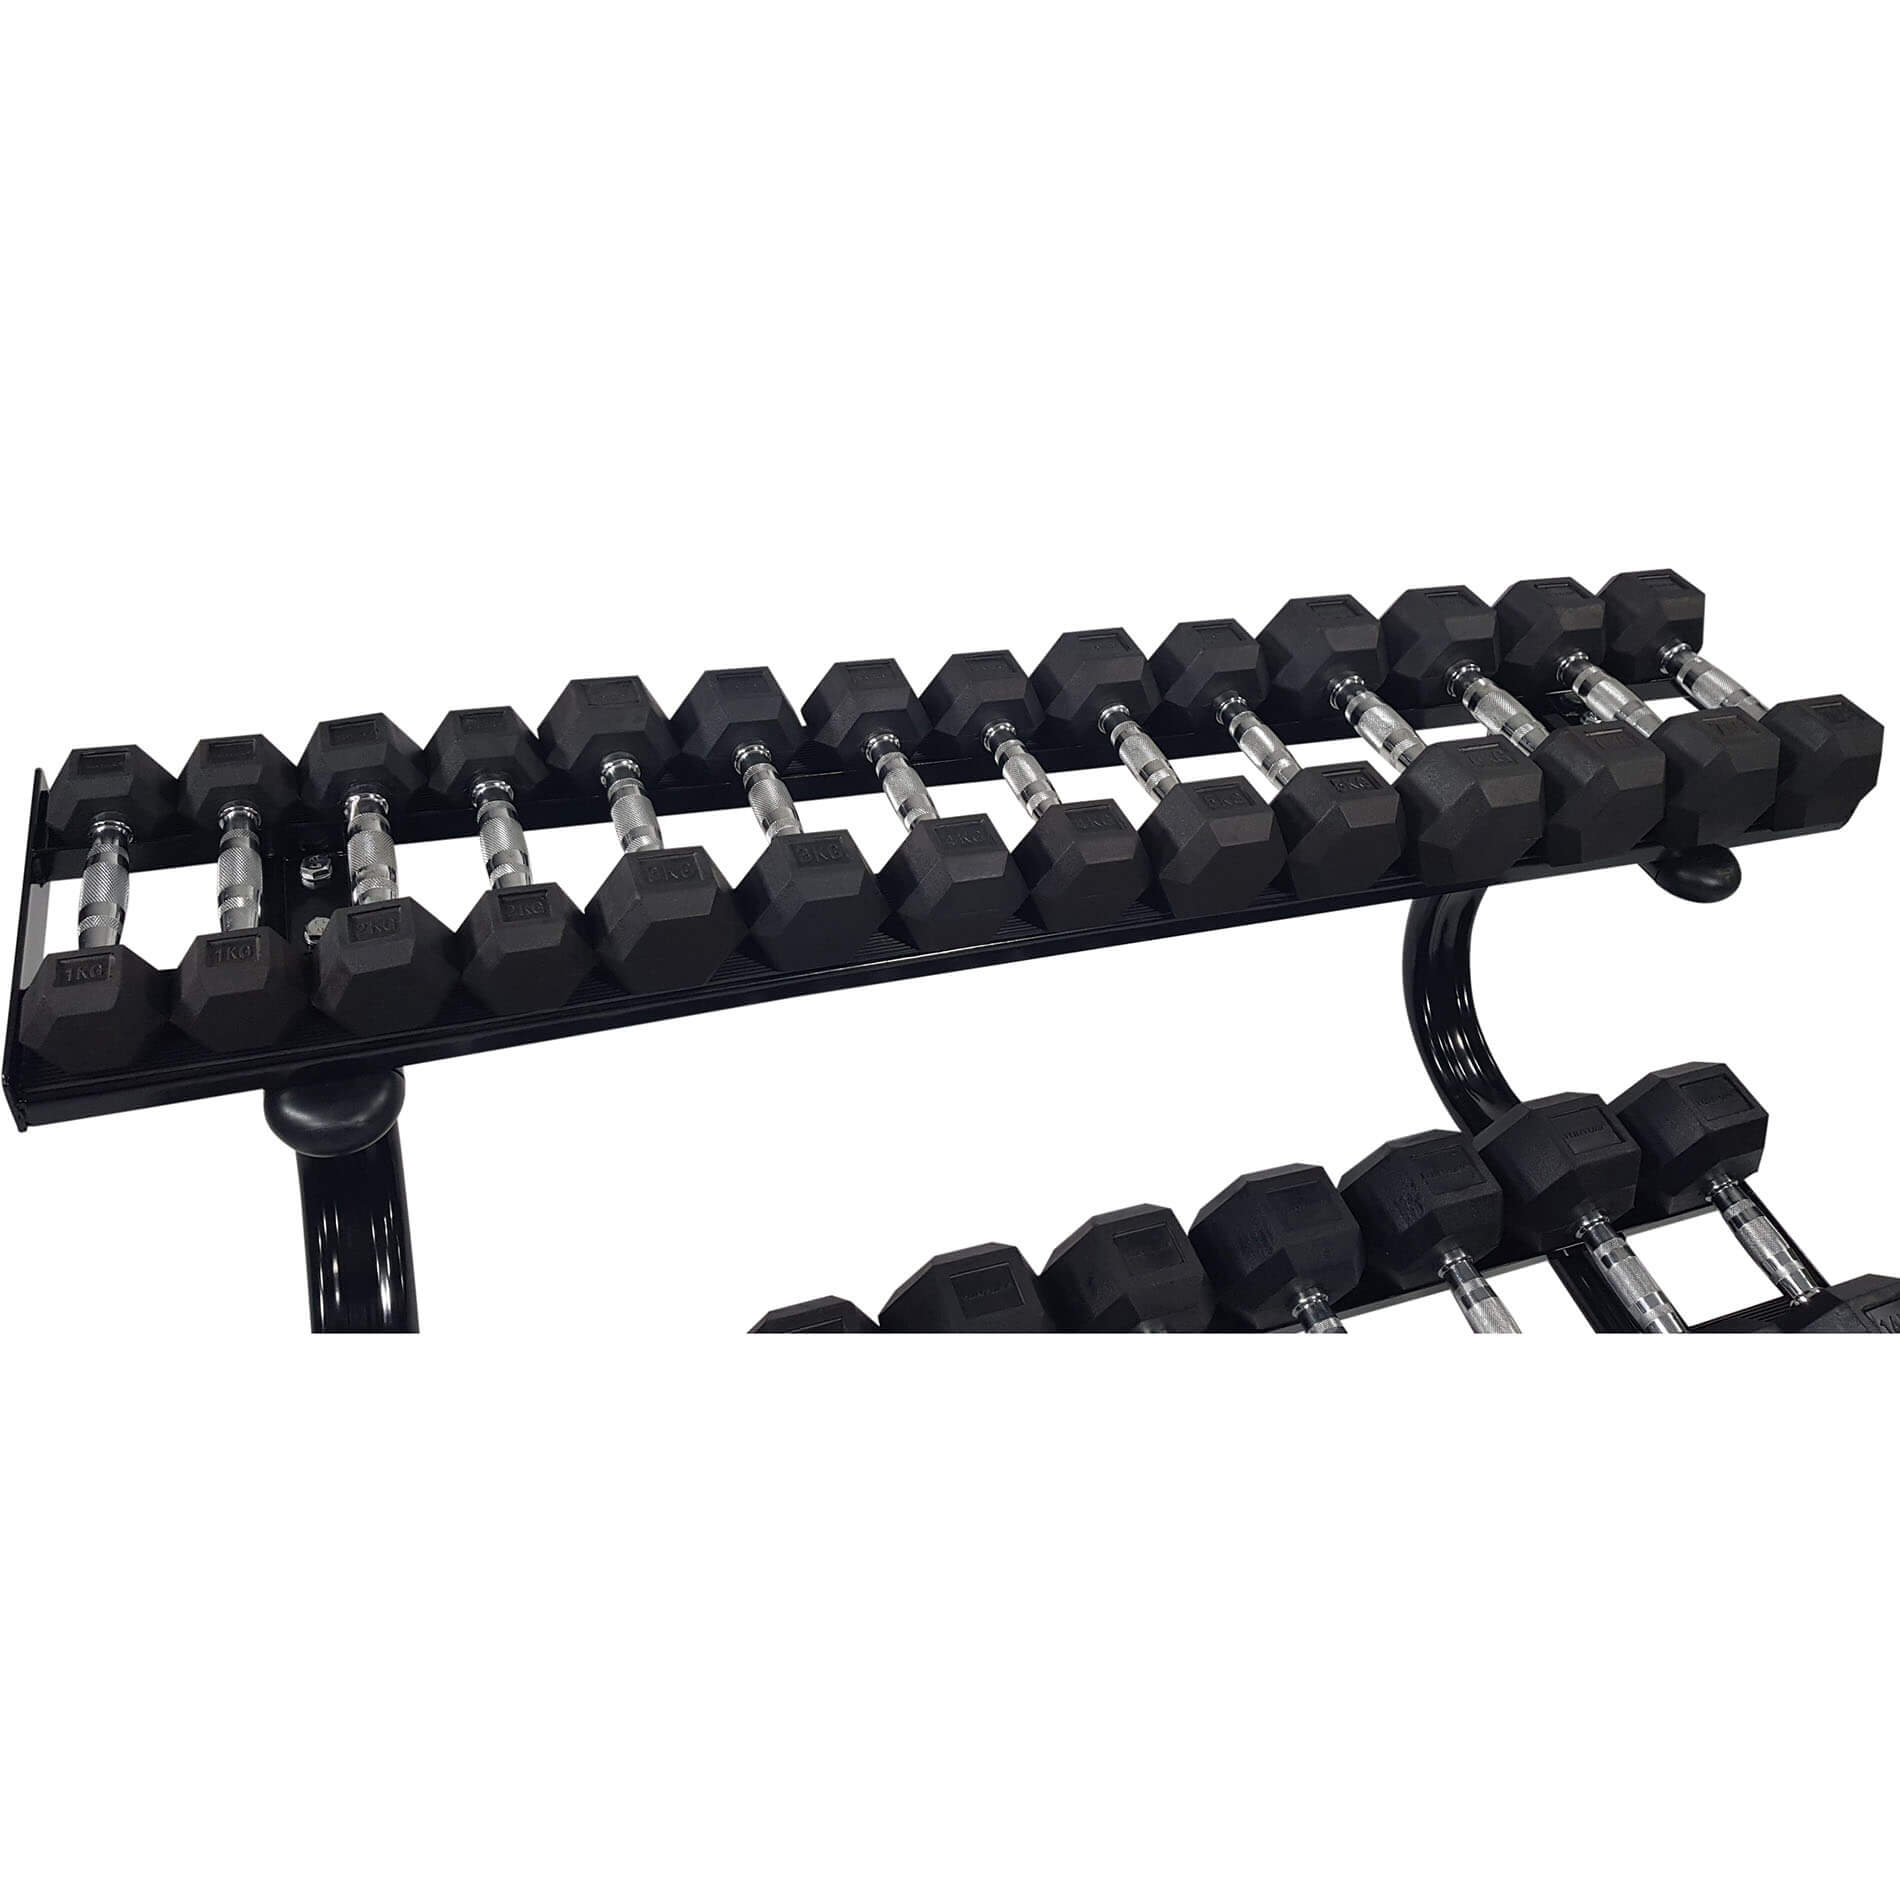 Dumbbell Rack Prof 2 Levels